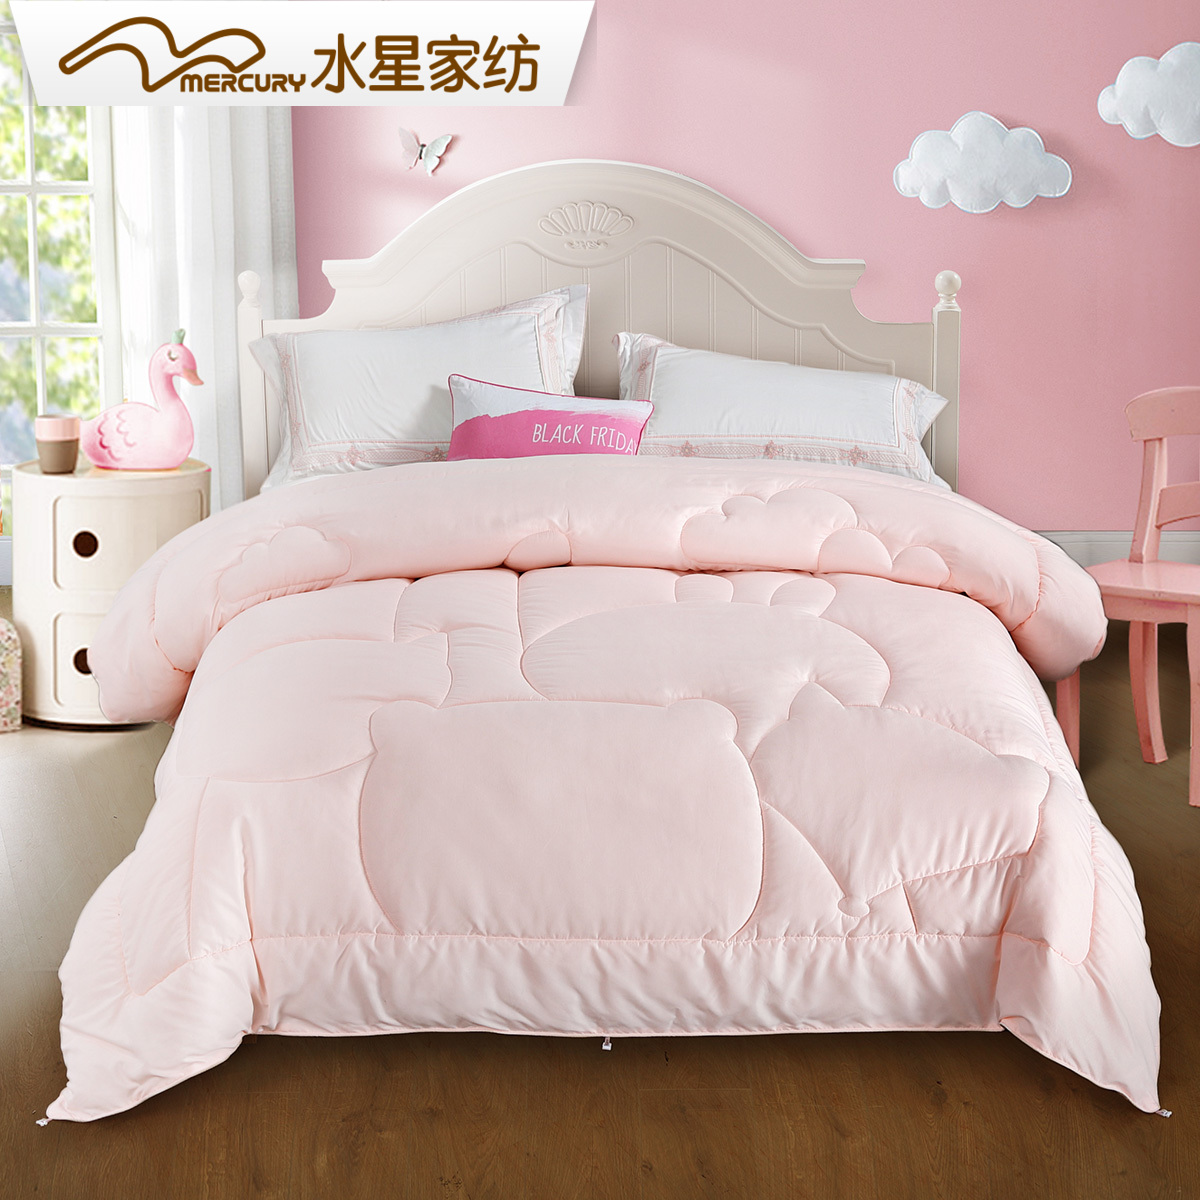 Mercury home textile childrens yingrou antibacterial seven hole spring and autumn quilt winter quilt thickened winter quilt seven hole quilt core 20 new products